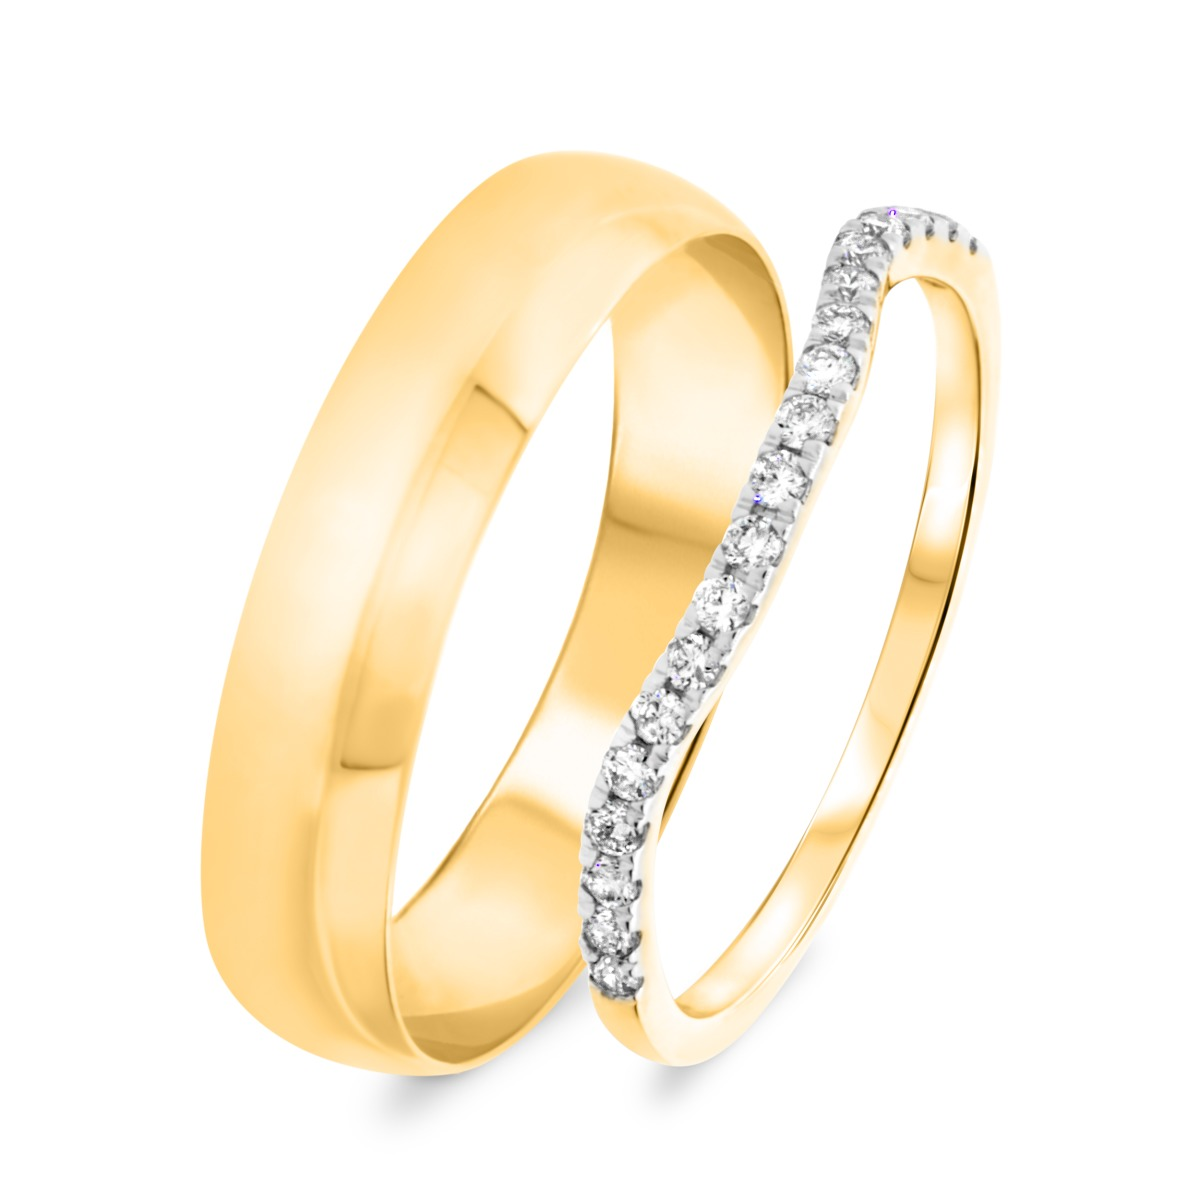 1/5 Carat T.W. Round Cut Diamond His and Hers Wedding Band Set 10K Yellow Gold